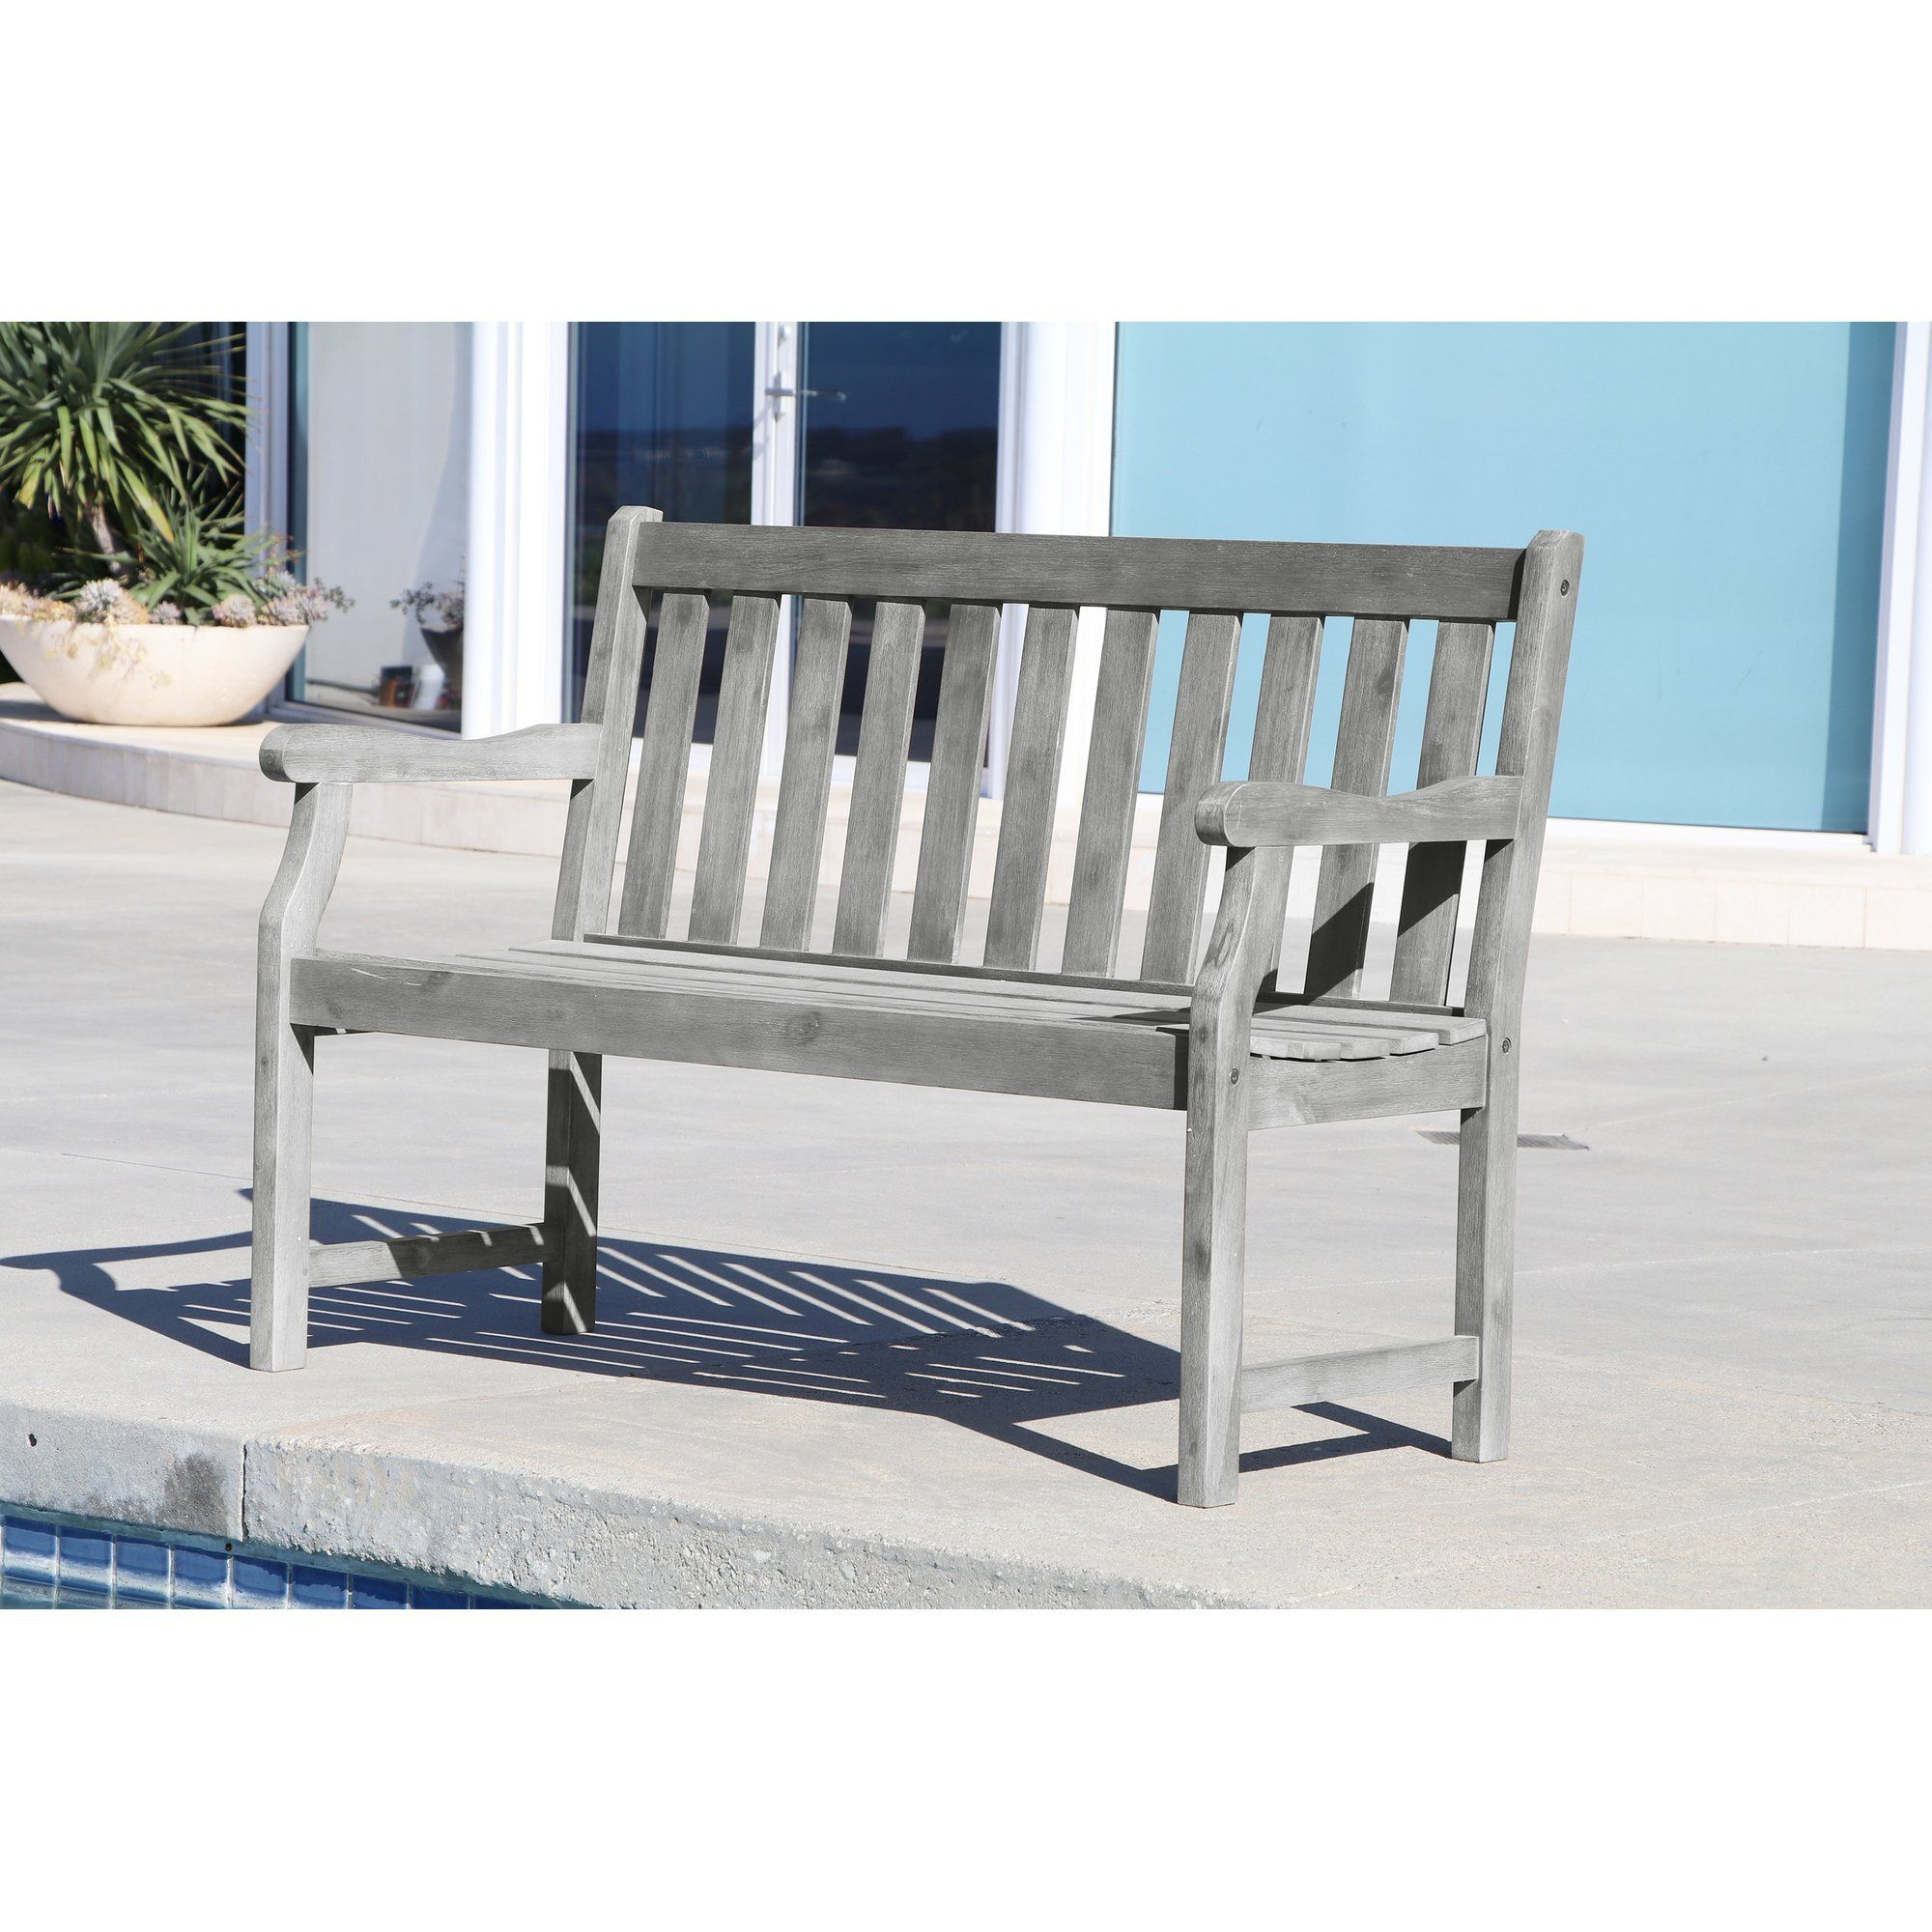 Manchester Solid Wood Garden Bench | Wooden Garden Benches Intended For Manchester Wooden Garden Benches (View 5 of 25)